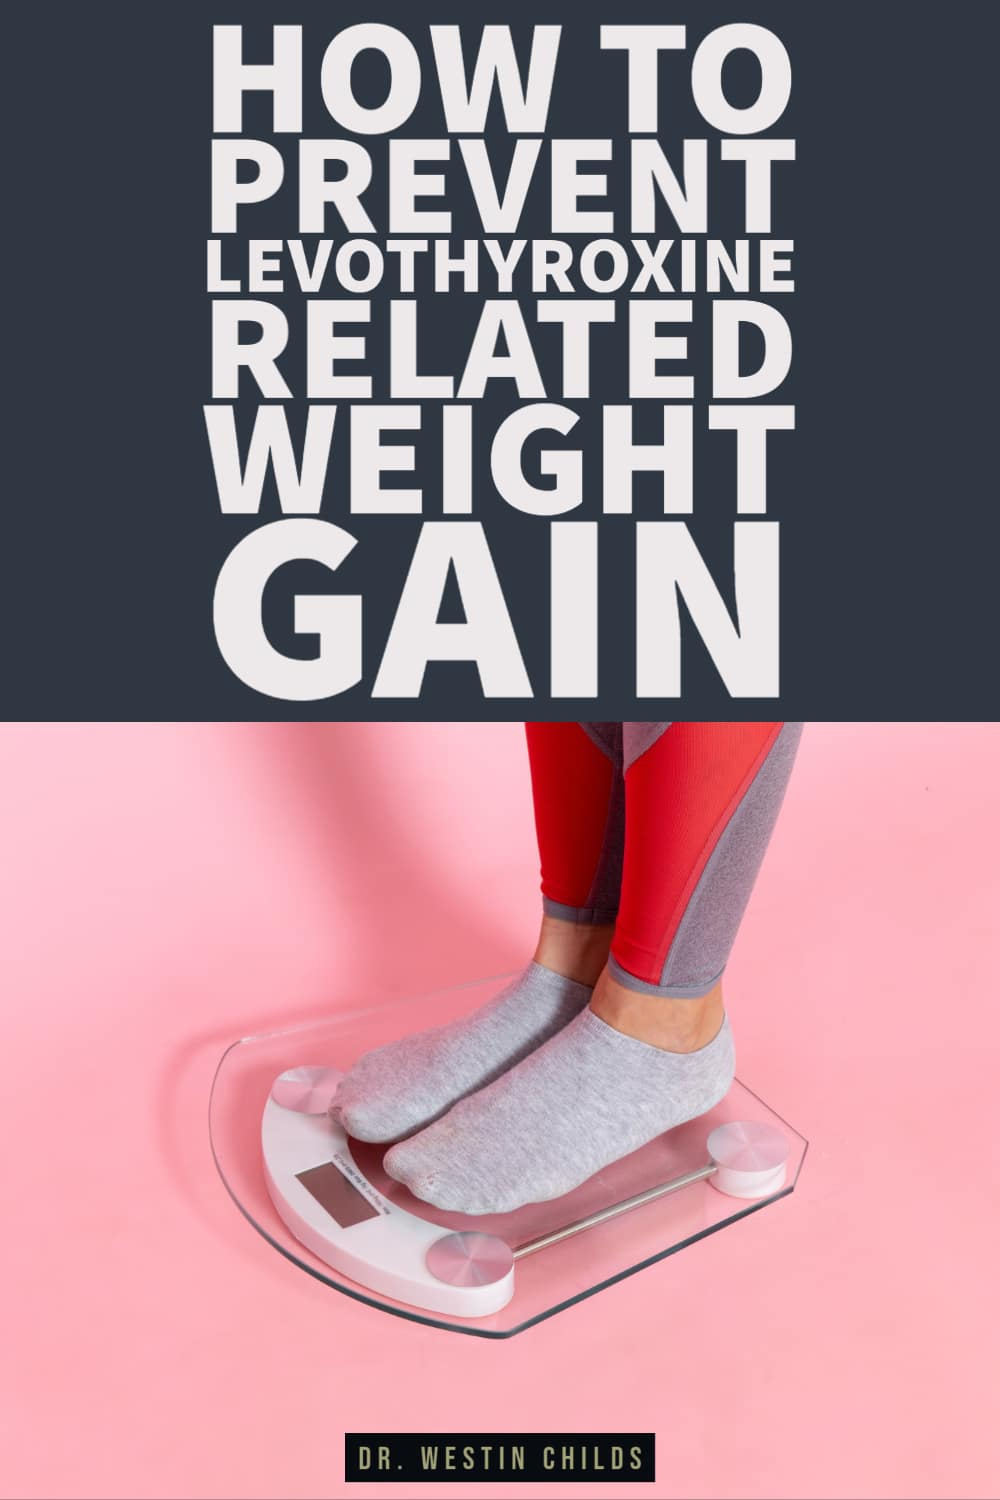 how to prevent levothyroxine related weight gain